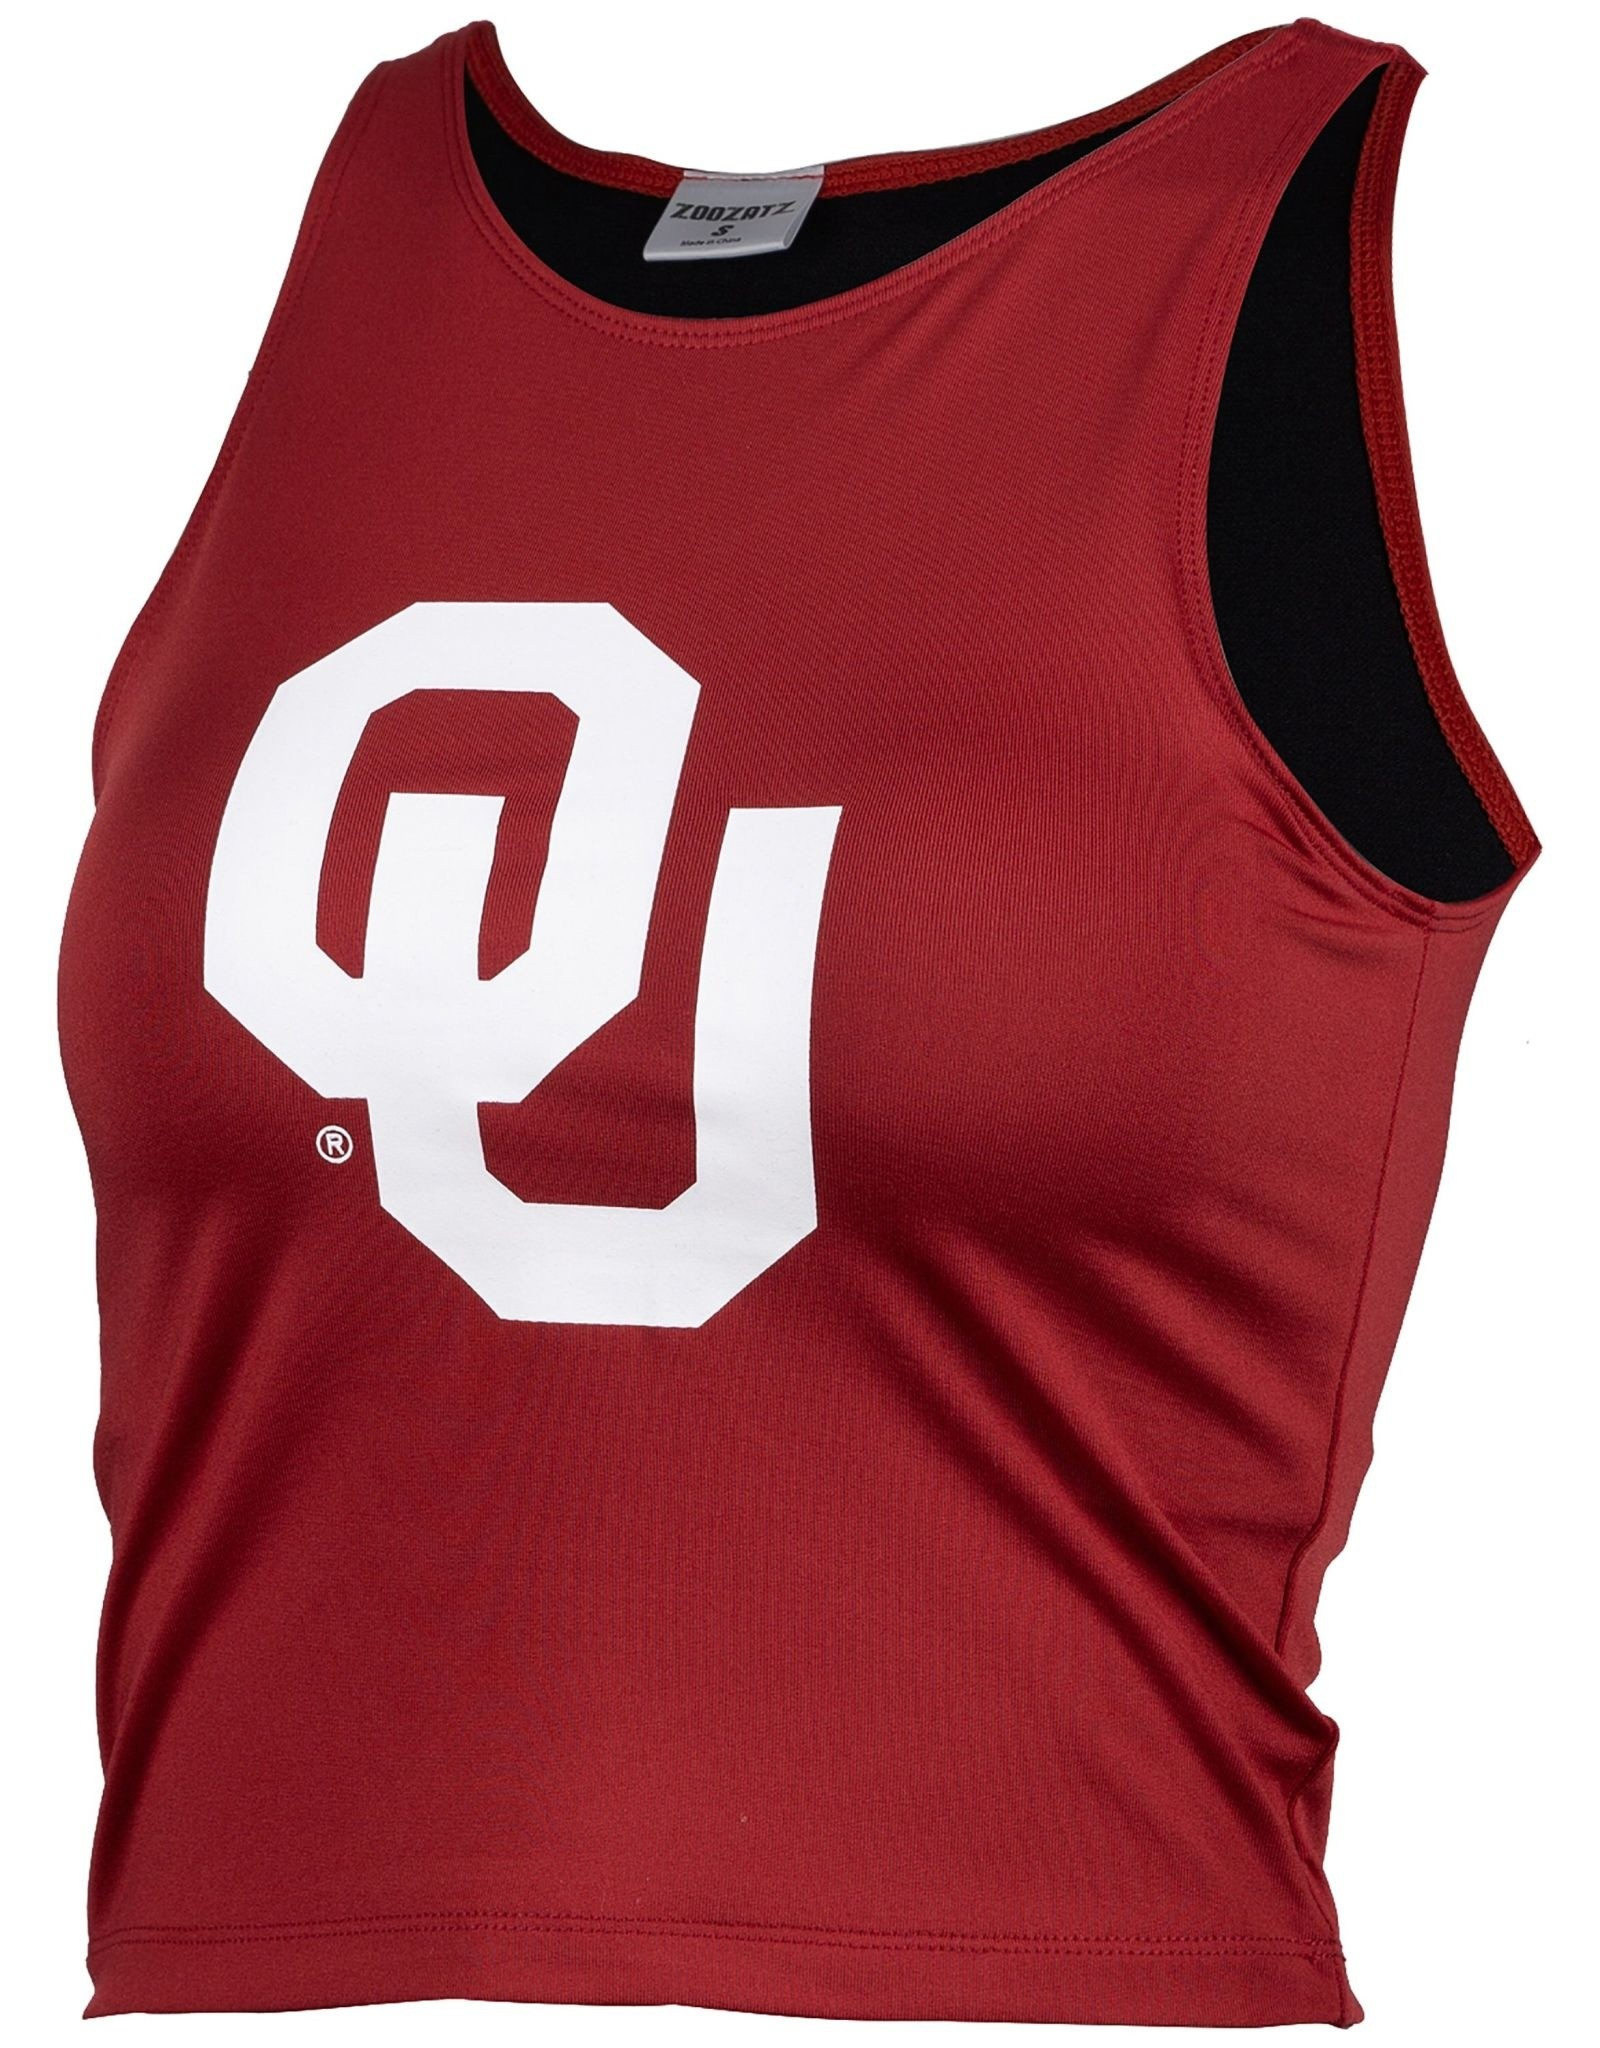 ZooZatz Women's OU Crimson 1st Down Crop